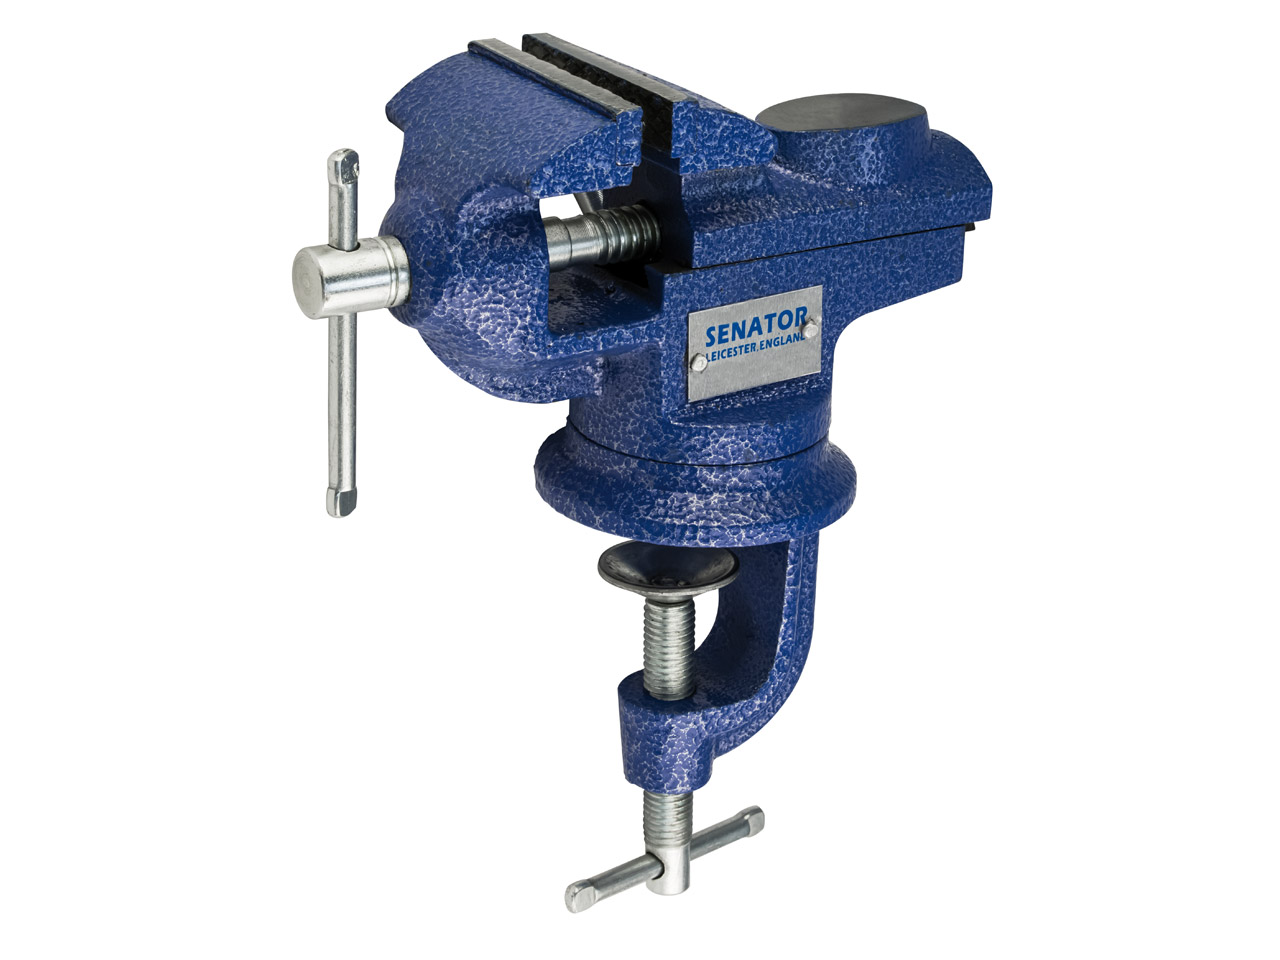 Bench Vice, Swivel Base G-clamp